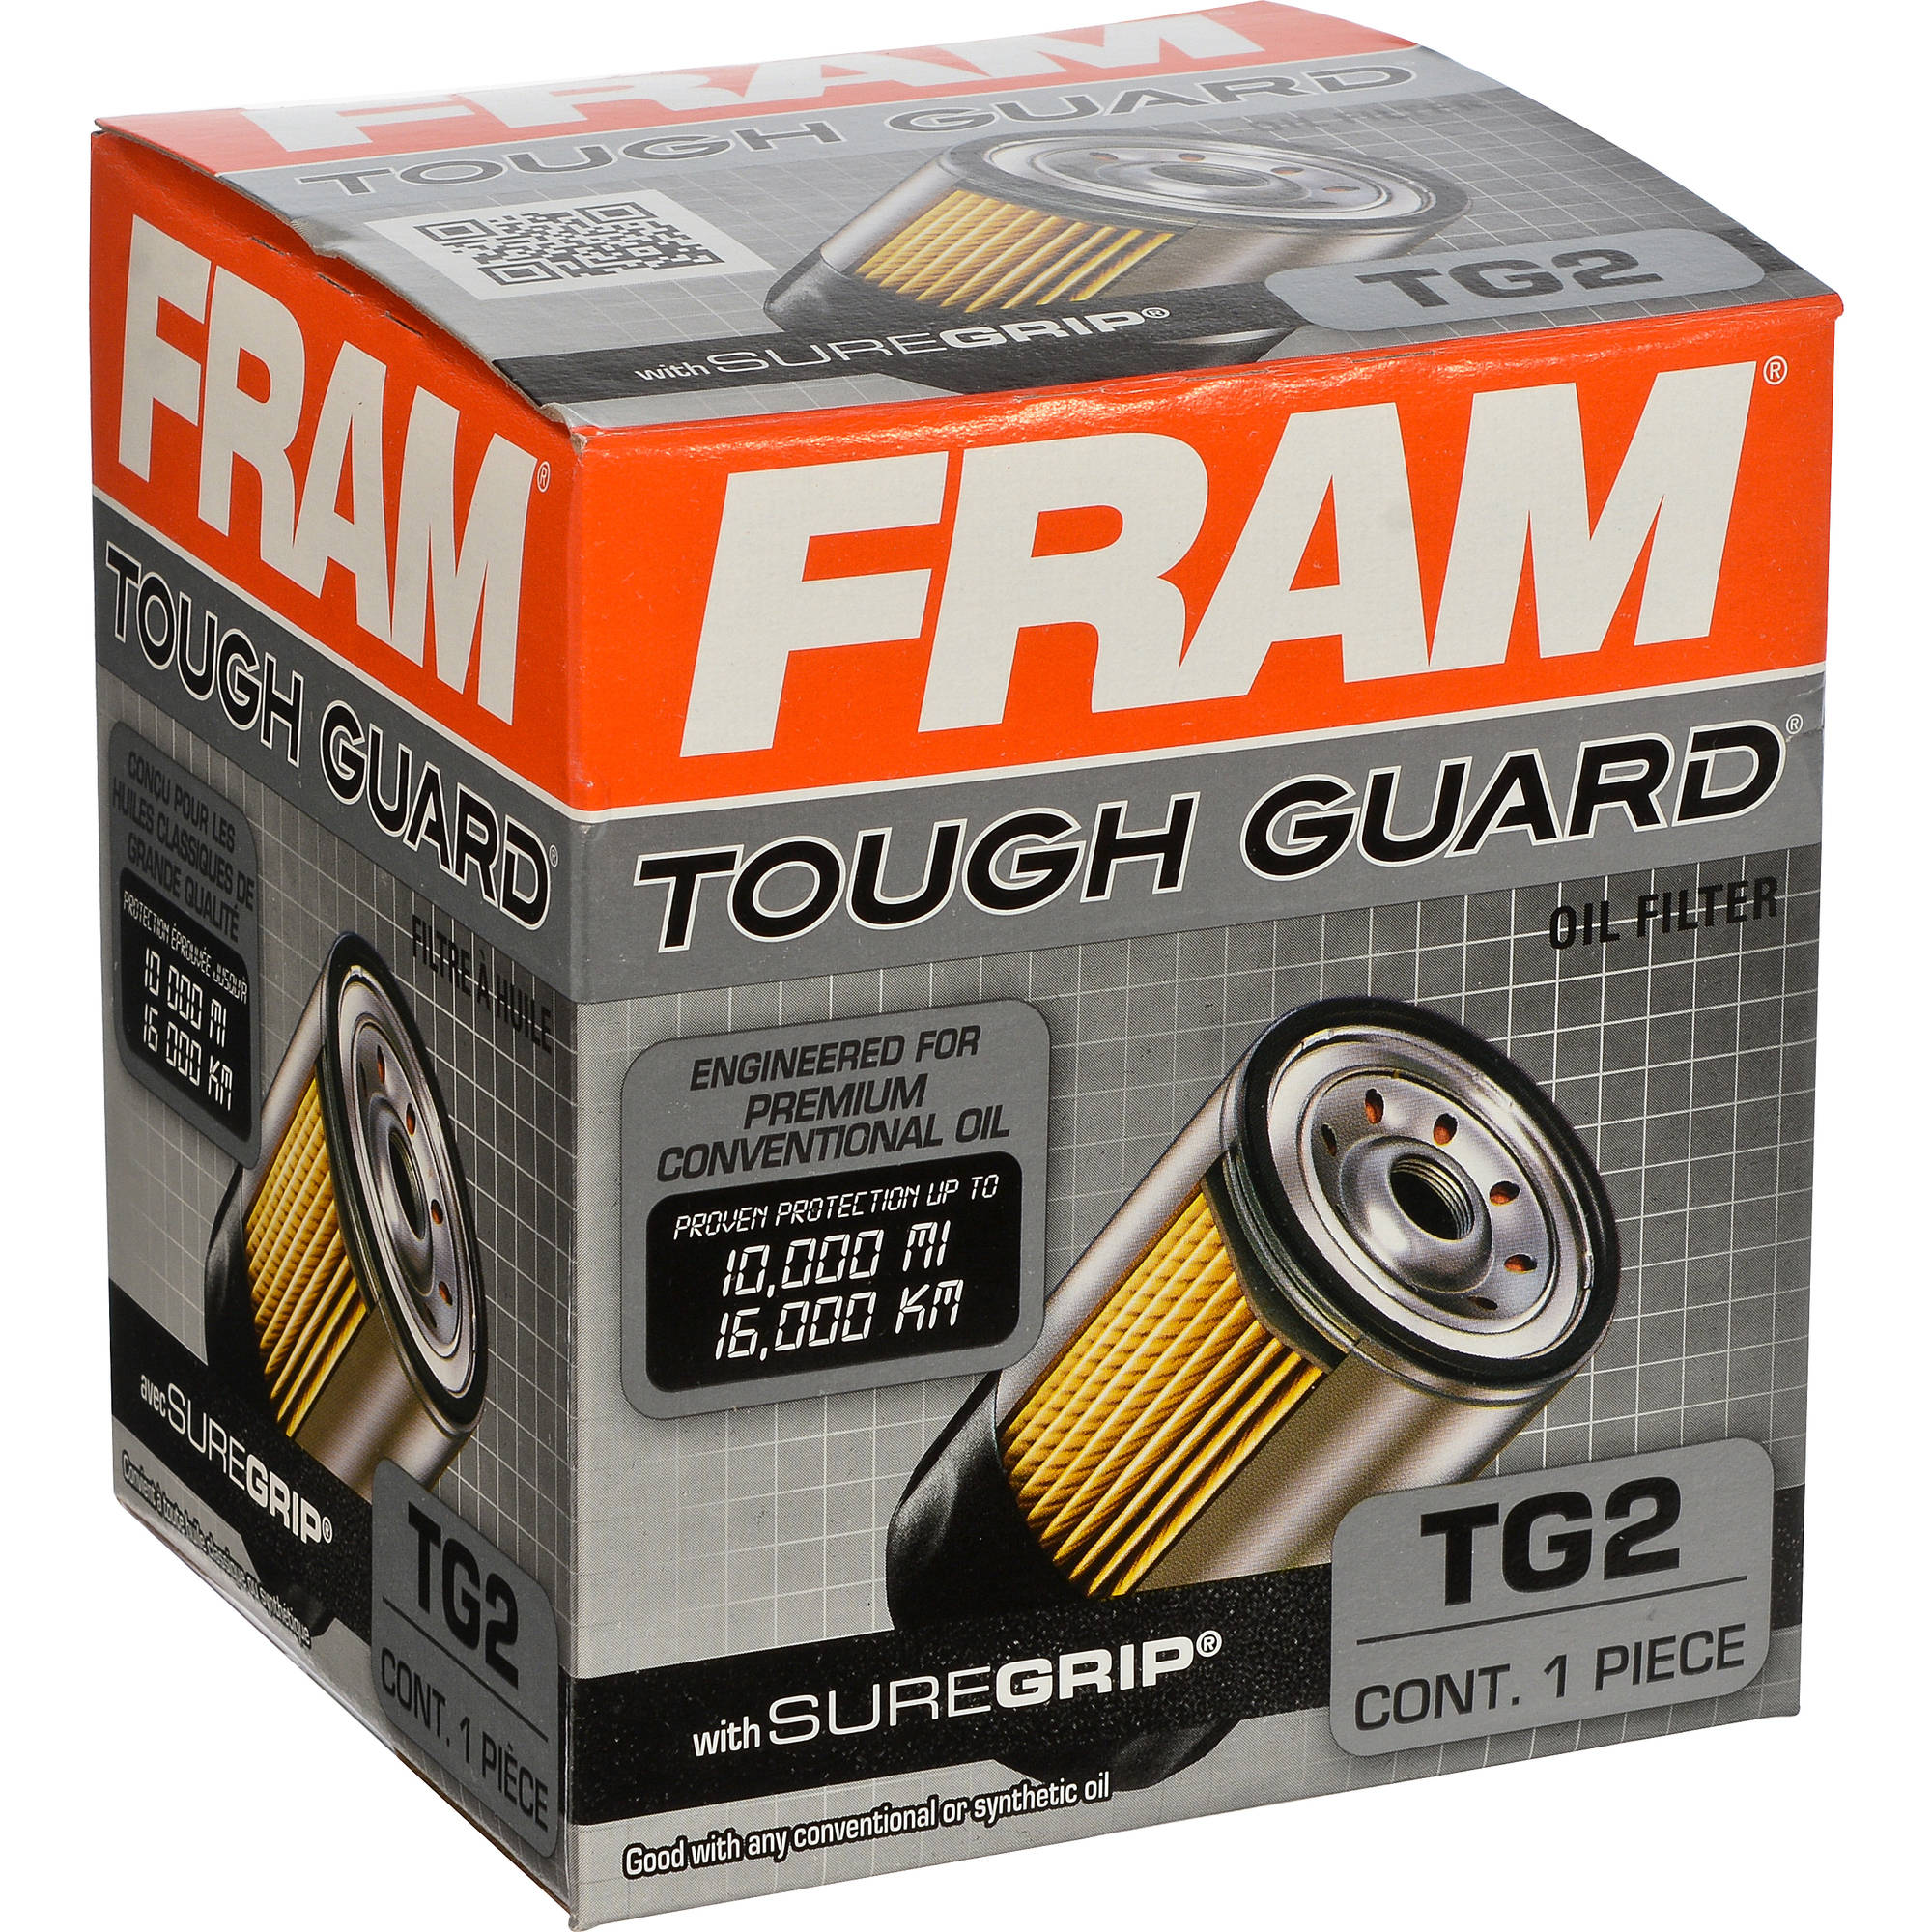 FRAM Tough Guard Oil Filter, TG2